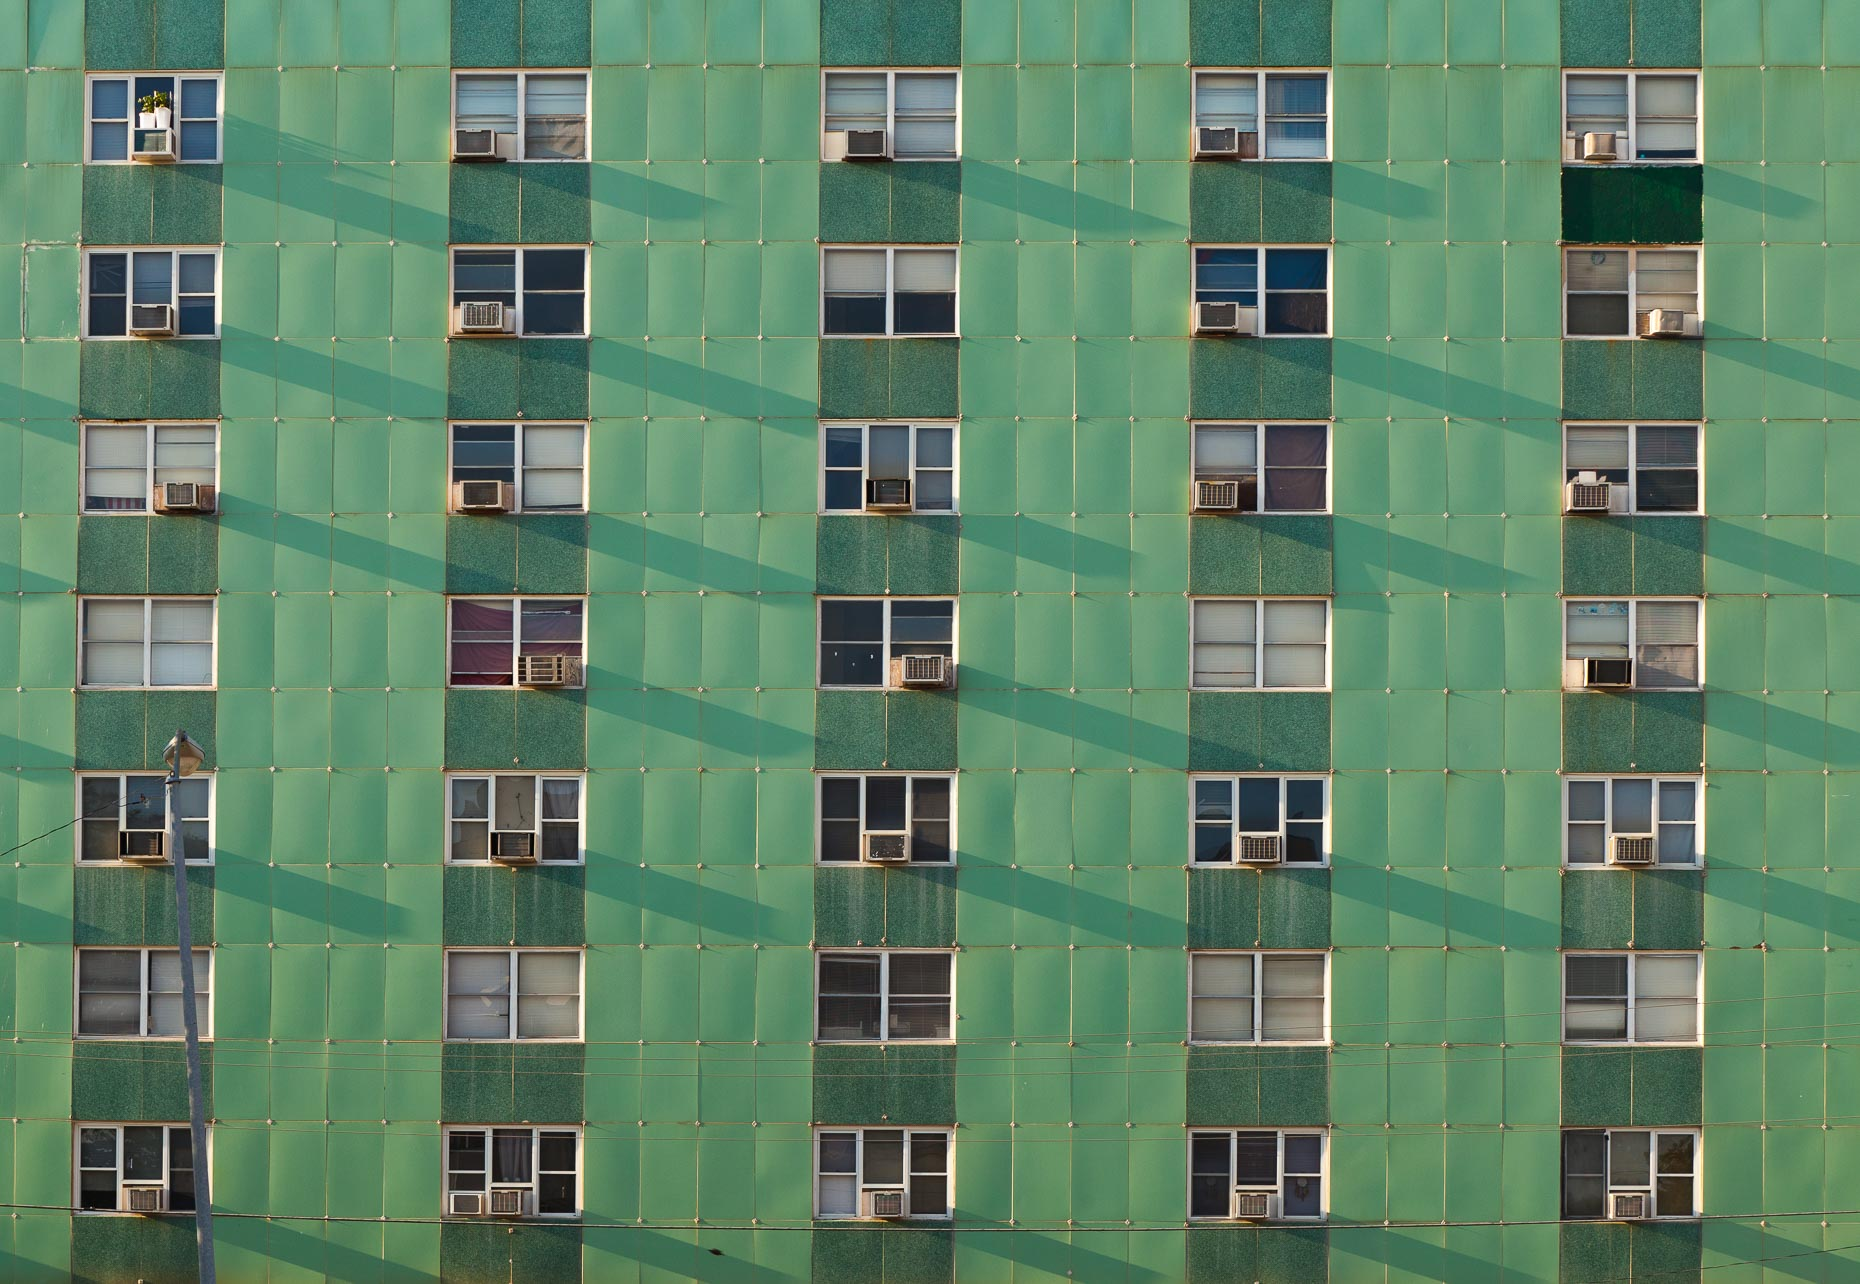 Green apartment building with windows and air conditioners by David Zaitz